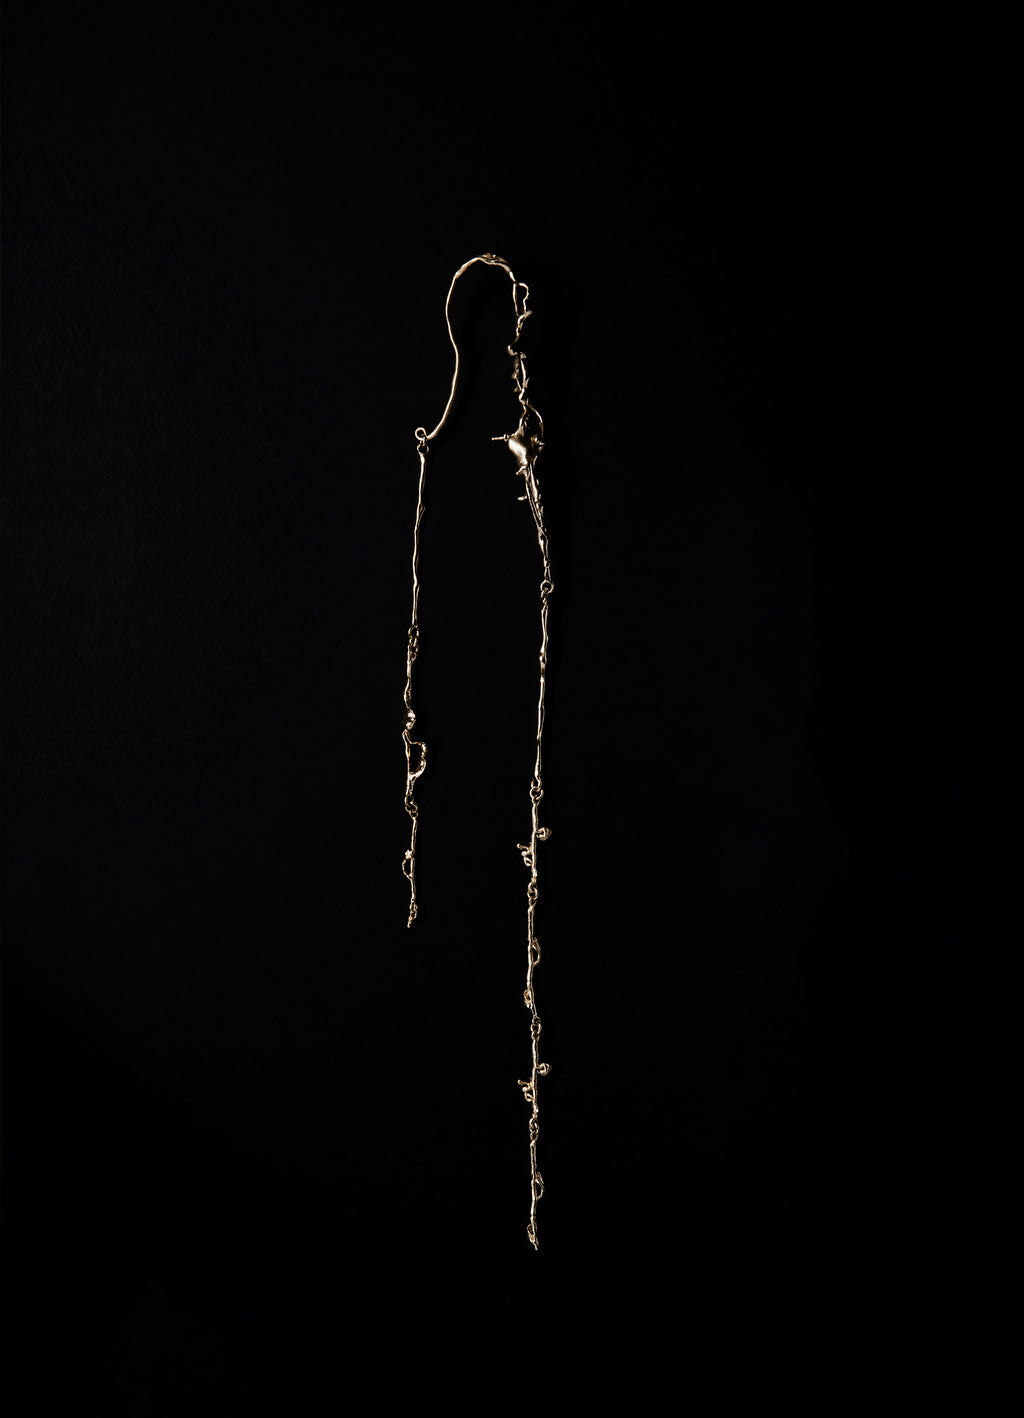 Twig earpiece